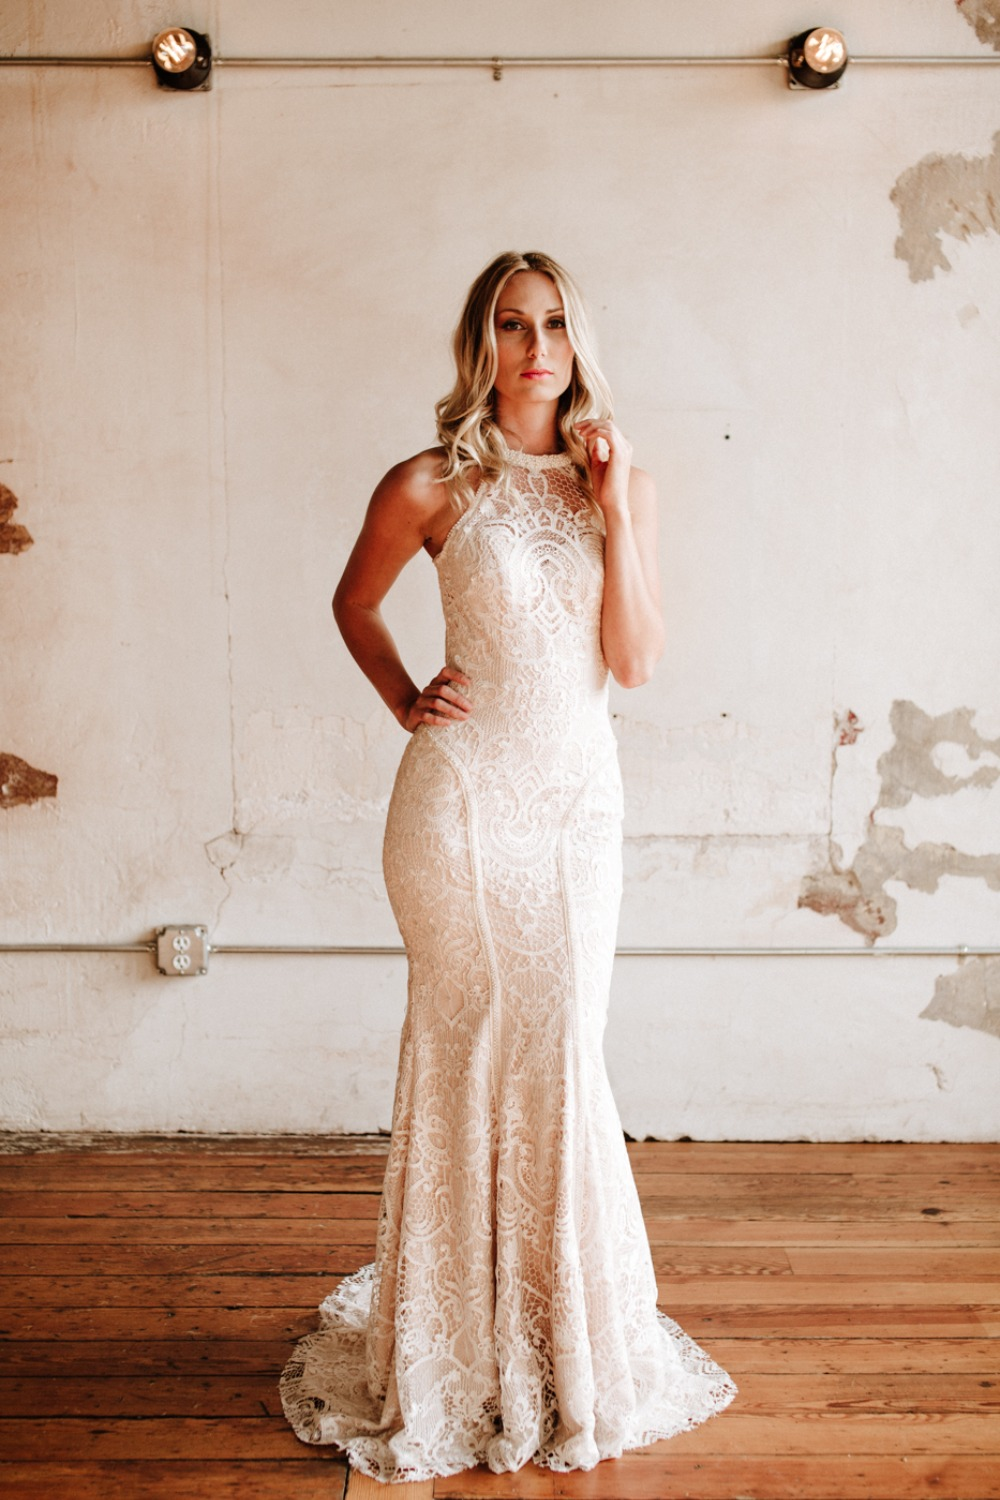 Custom made lace wedding dress from Angela Kim Couture